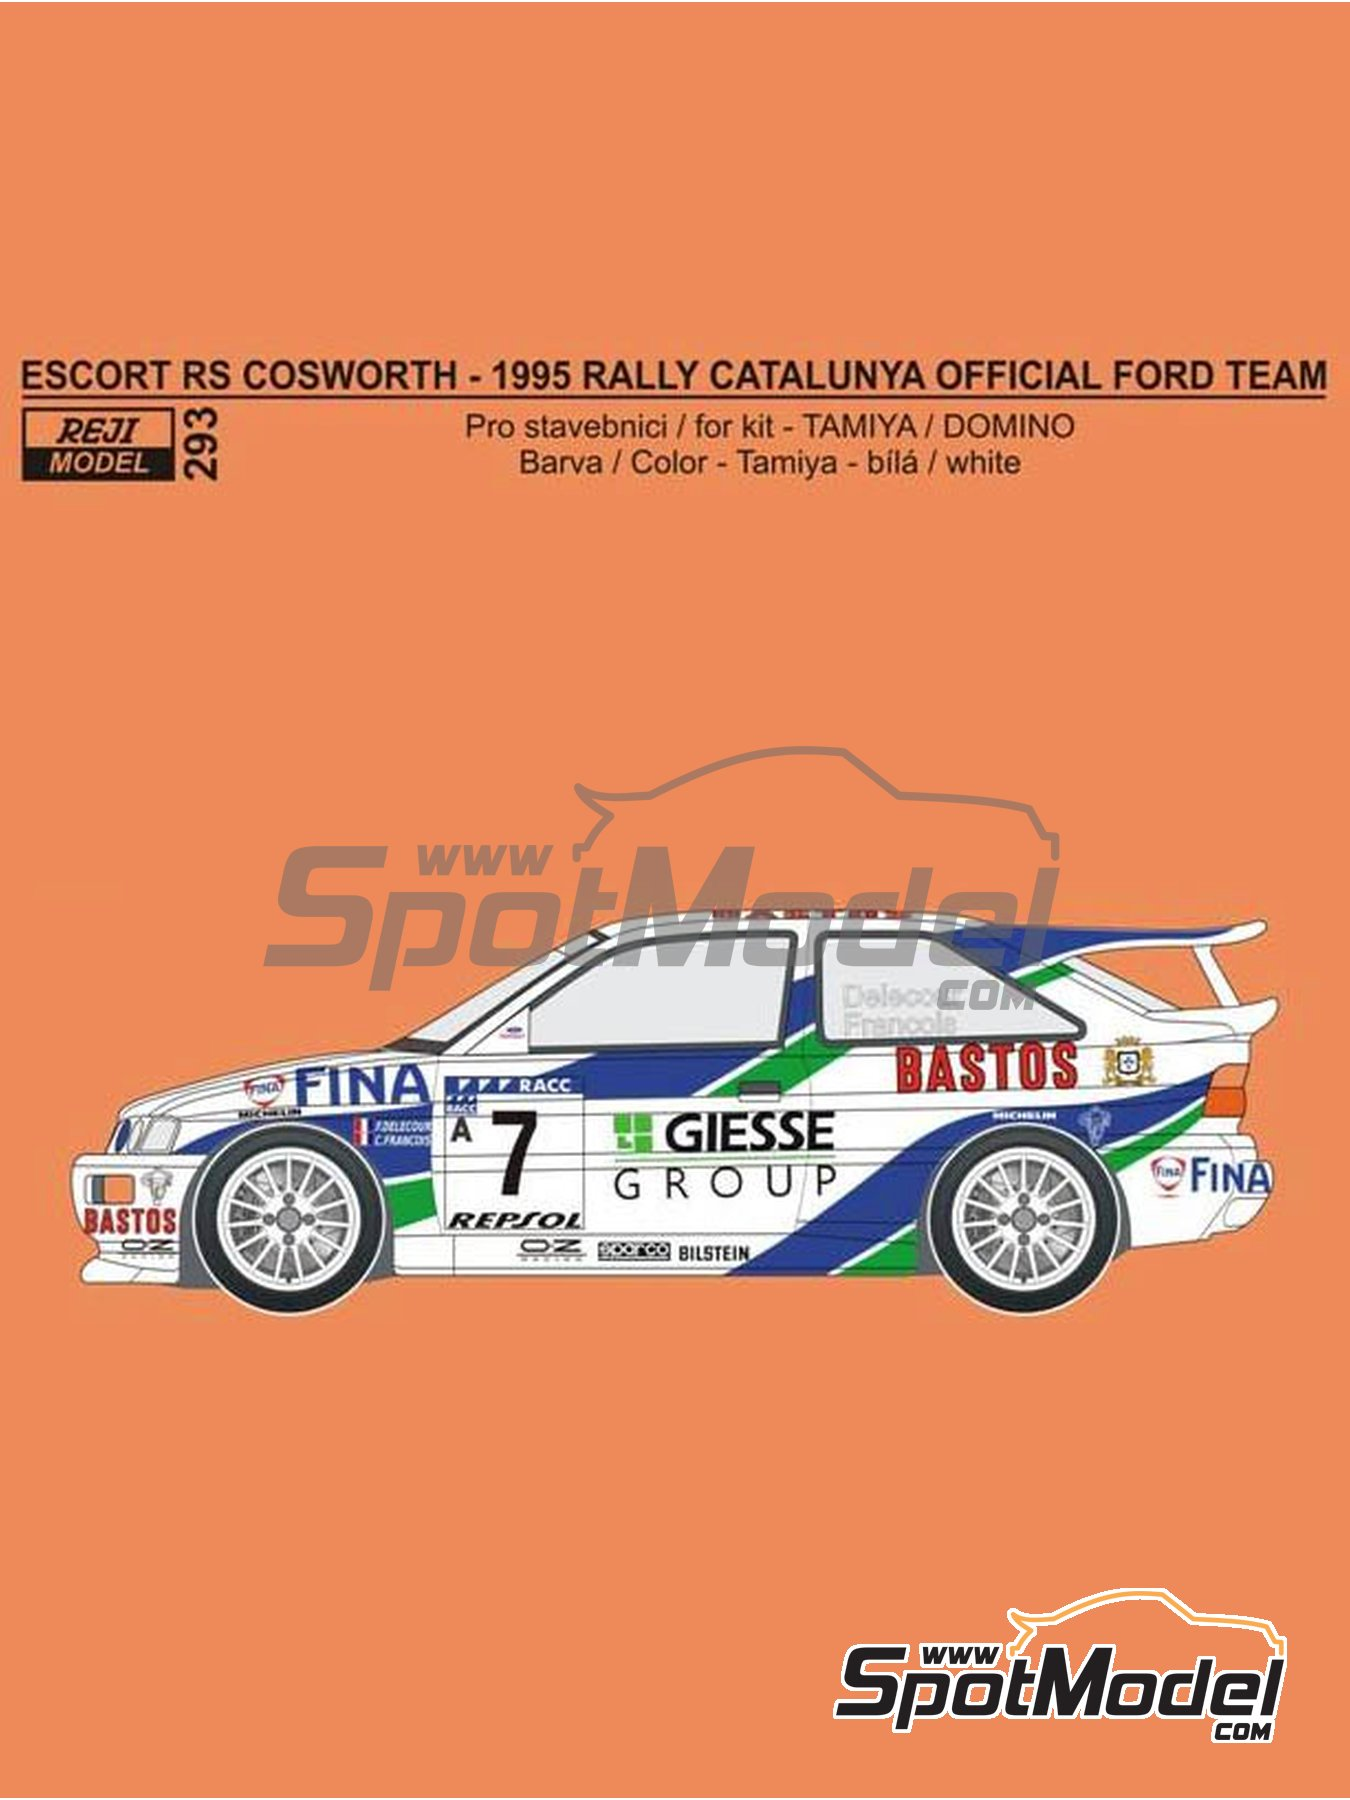 Ford Escort RS Cosworth Official Ford Team - Catalunya Costa Dorada RACC Rally 1995 | Marking / livery in 1/24 scale manufactured by Reji Model (ref. REJI-293) image